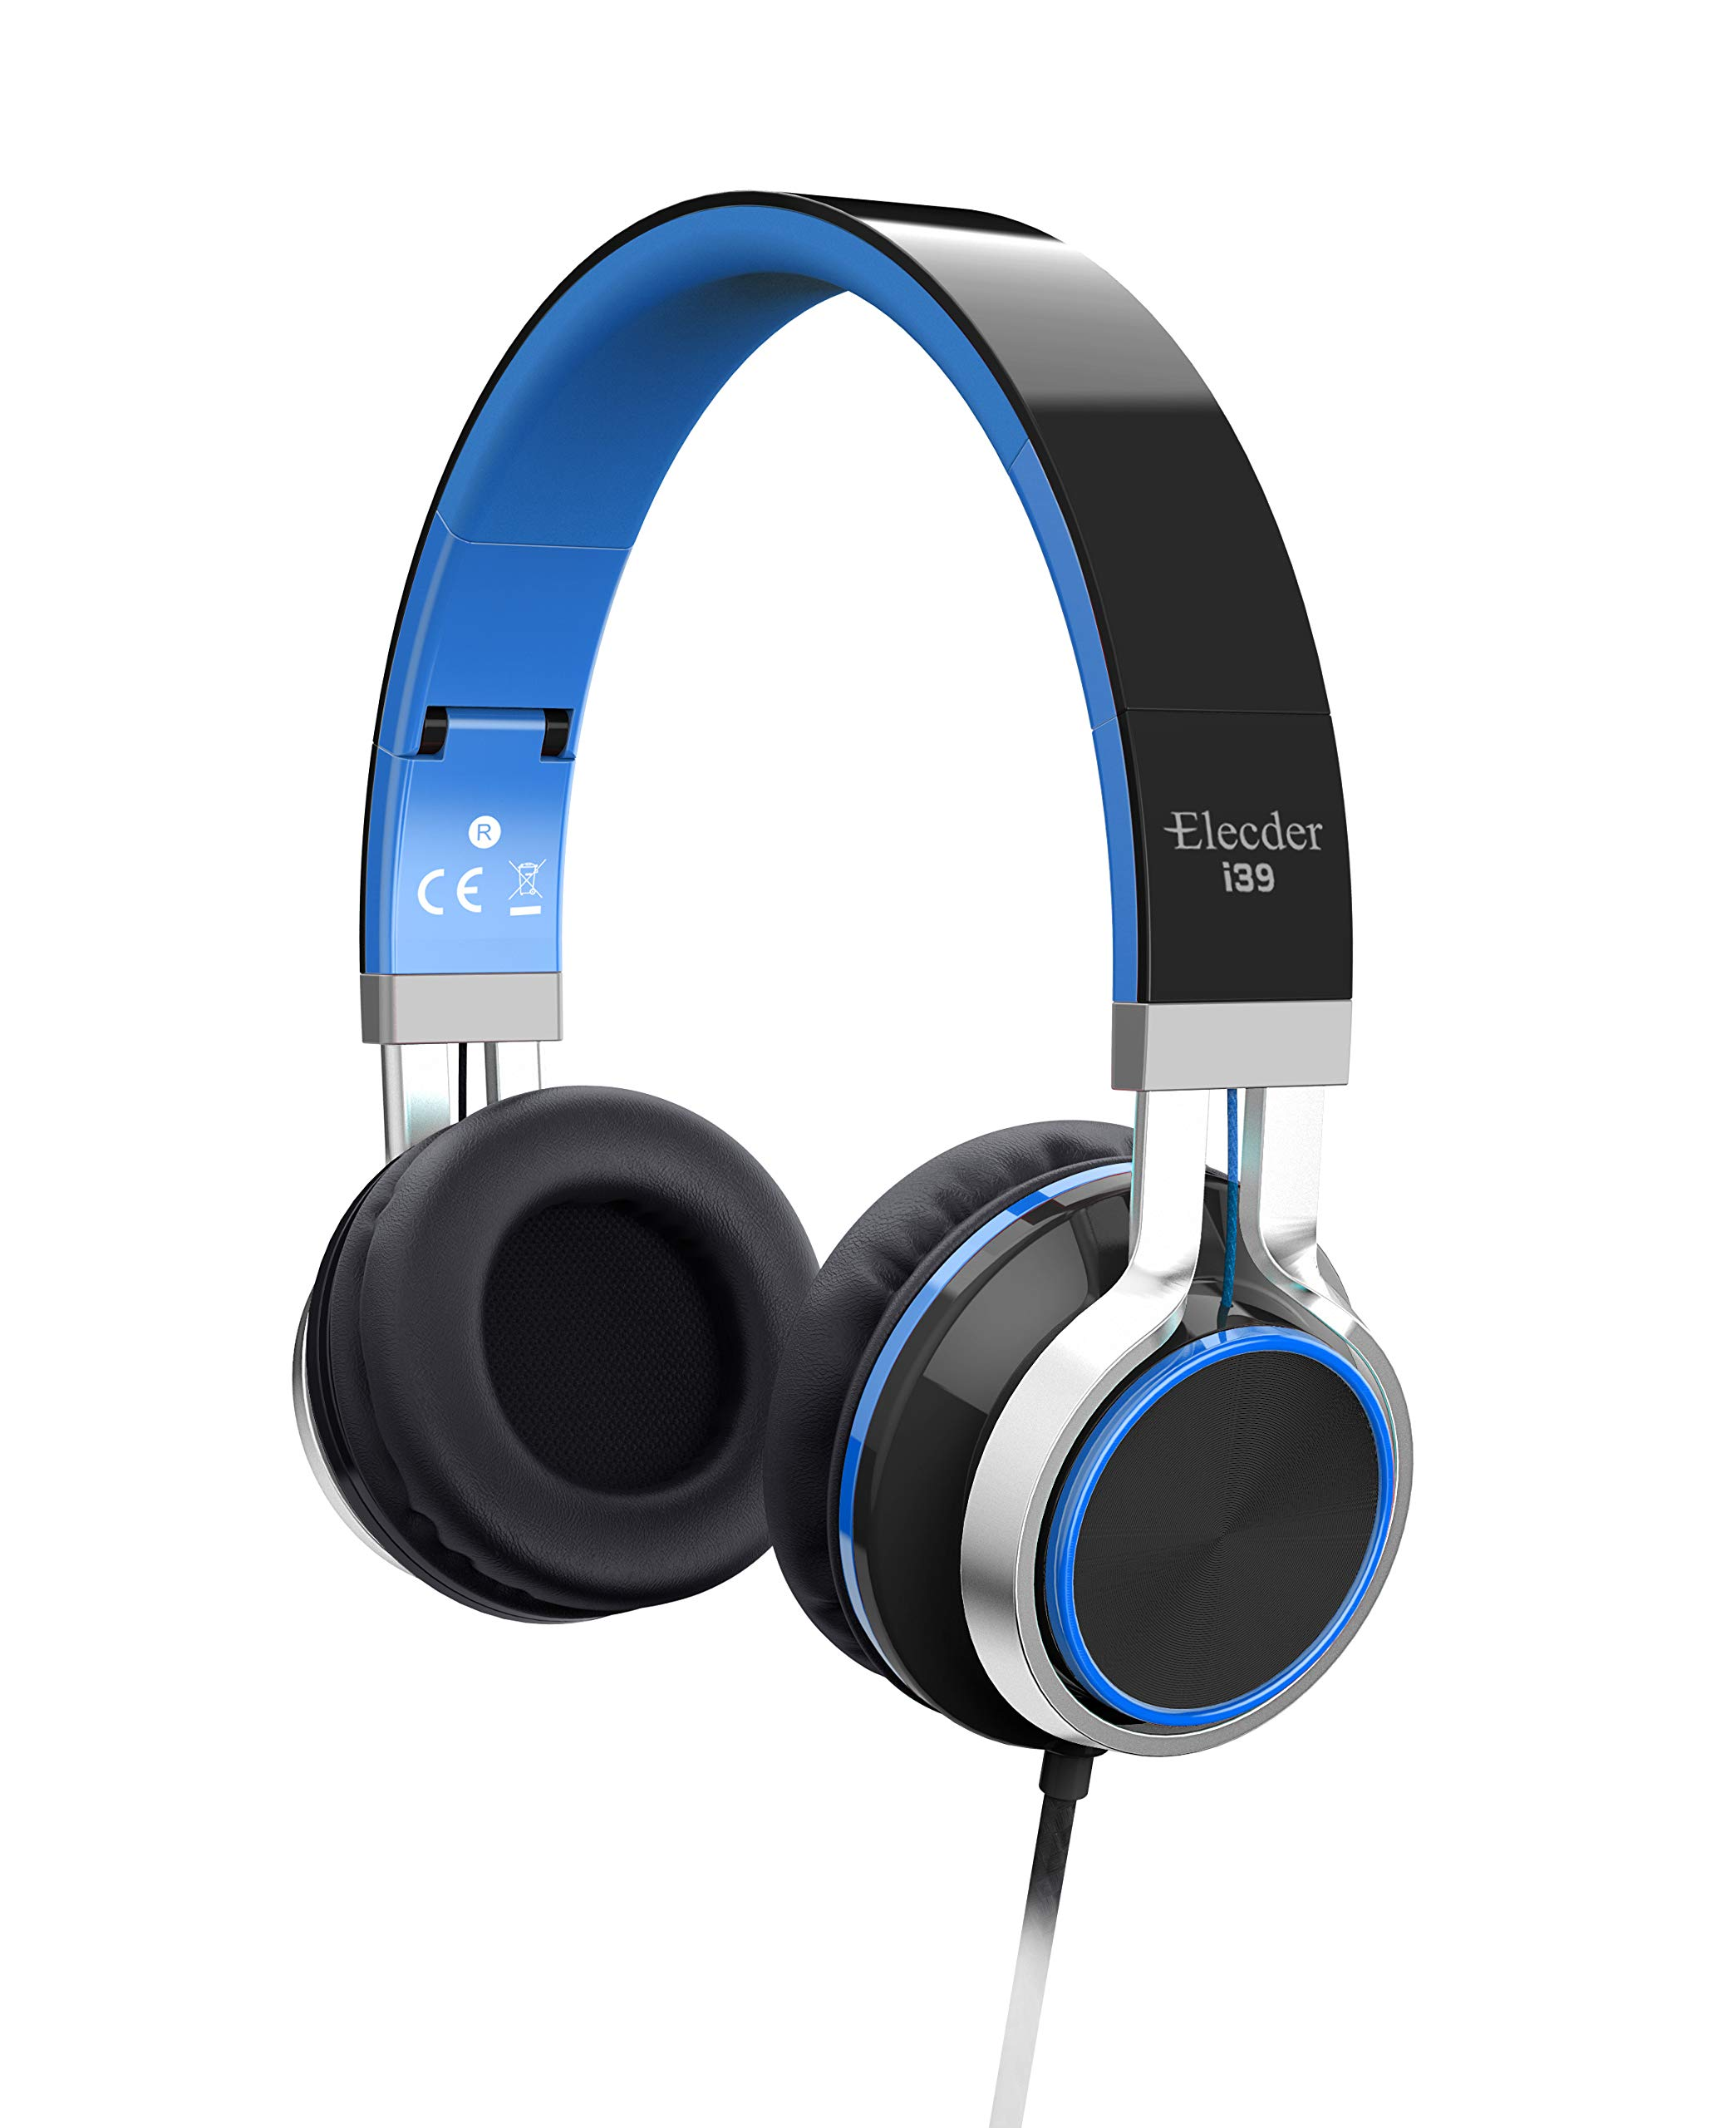 Elecder i39 Headphones with Microphone Kids Children Girls Boys Teens Foldable Adjustable Wired On Ear Headsets Compatible iPad Cellphones Computer MP3/4 Blue/Black